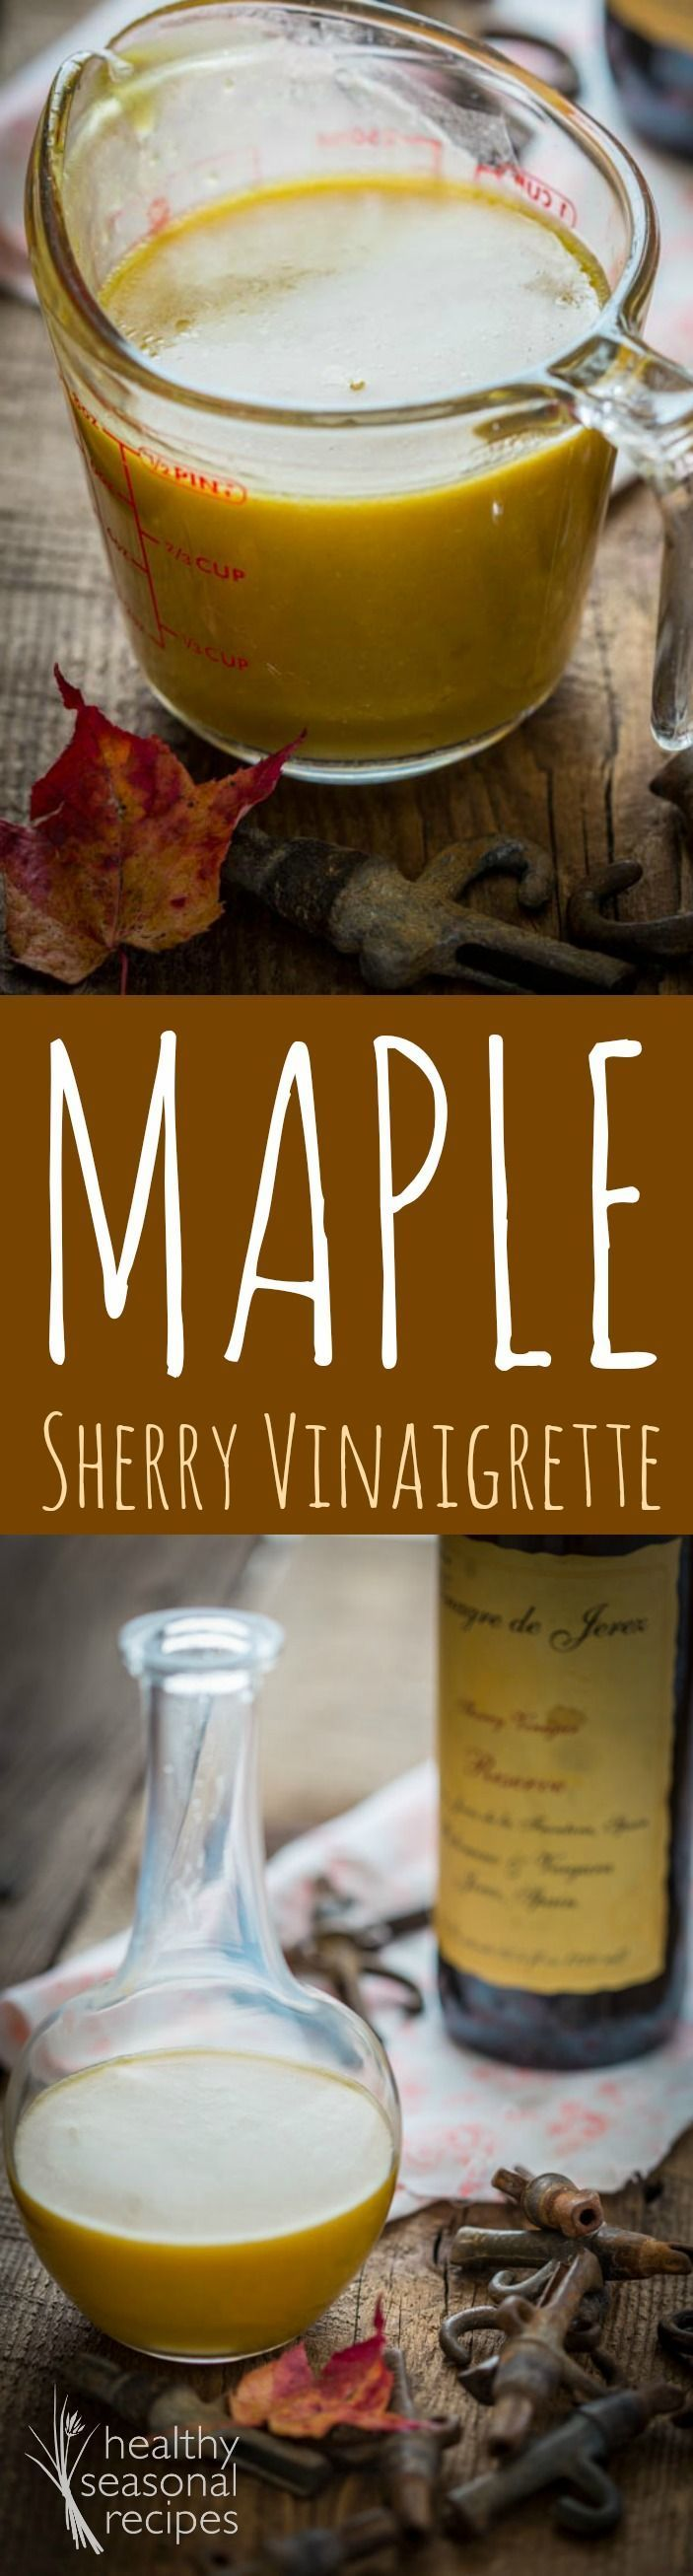 Simple salad dressing recipe made with sherry vinegar and maple syrup for a new favorite vinaigrette.